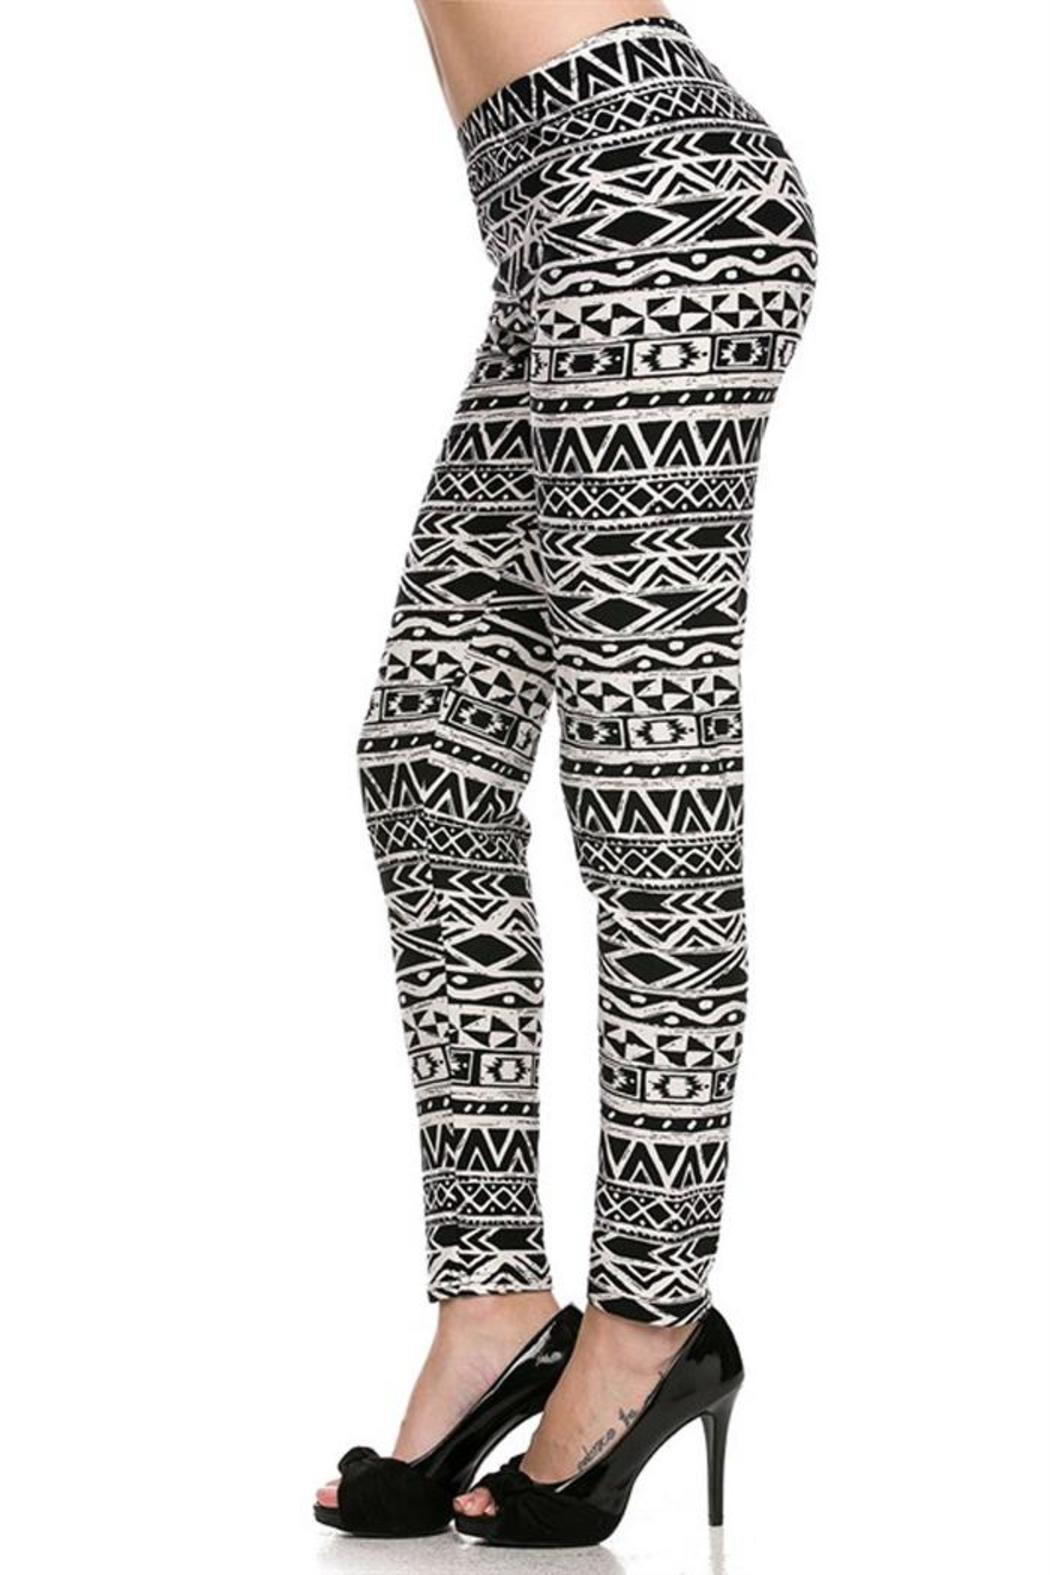 Fancy Fans Brushed Tribal Legging From Vermont By Avenue A